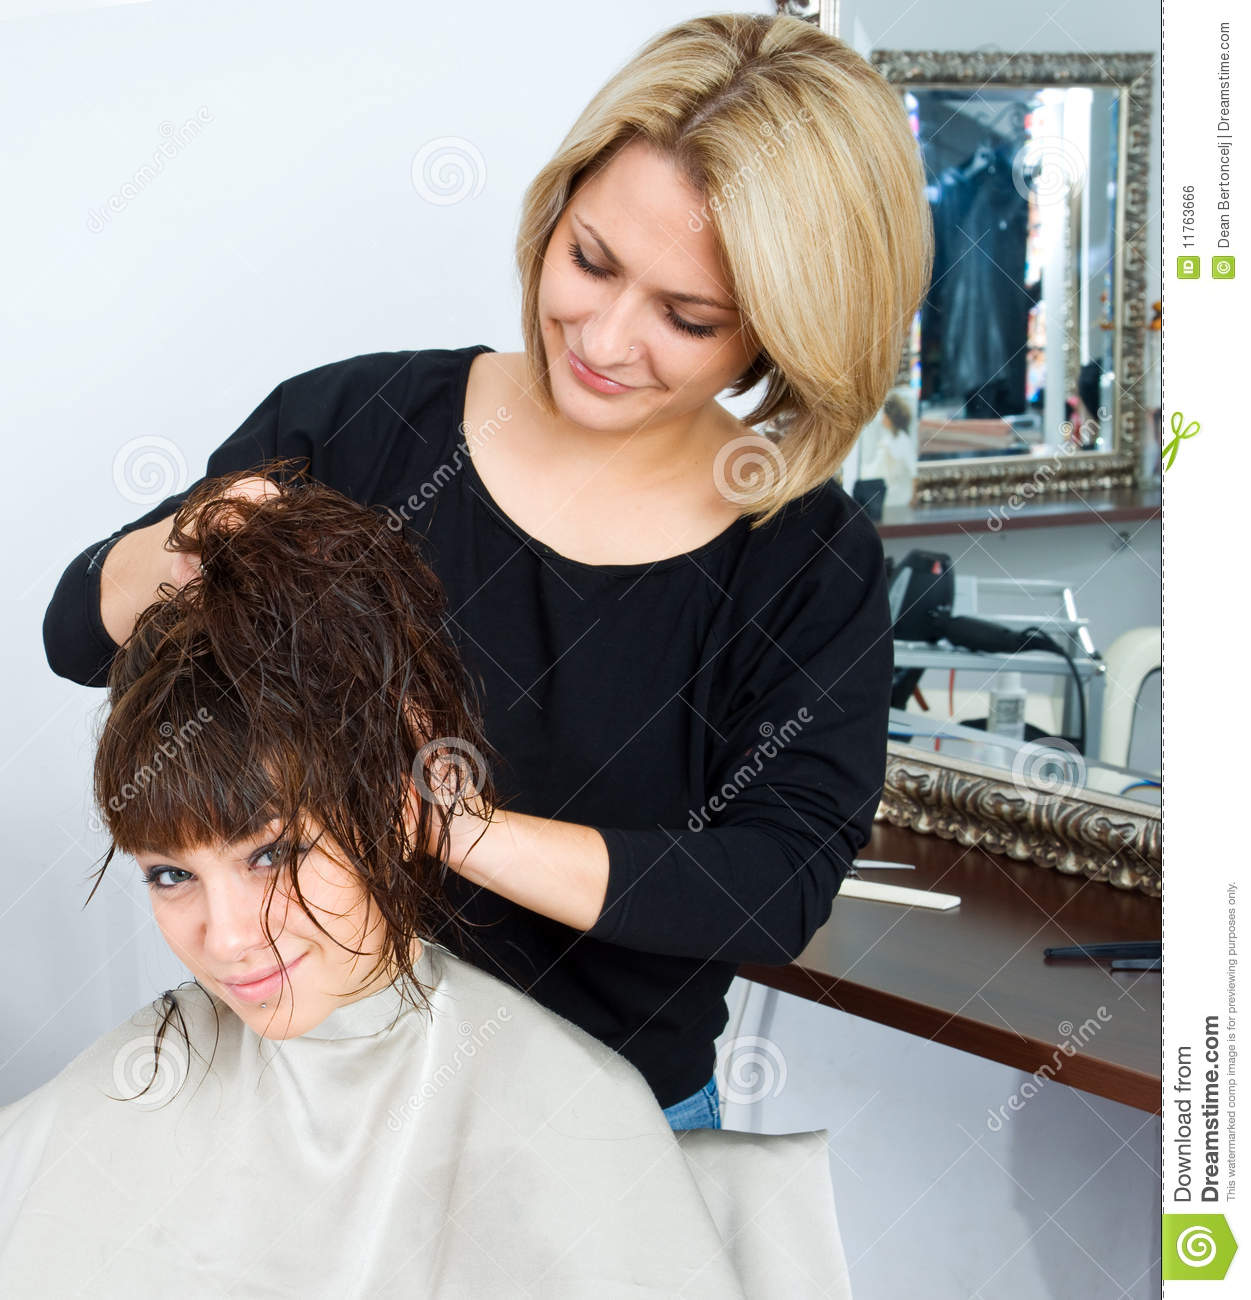 Professional Hairdresser : Professional Hair Stylist At Work Hair stylist in work